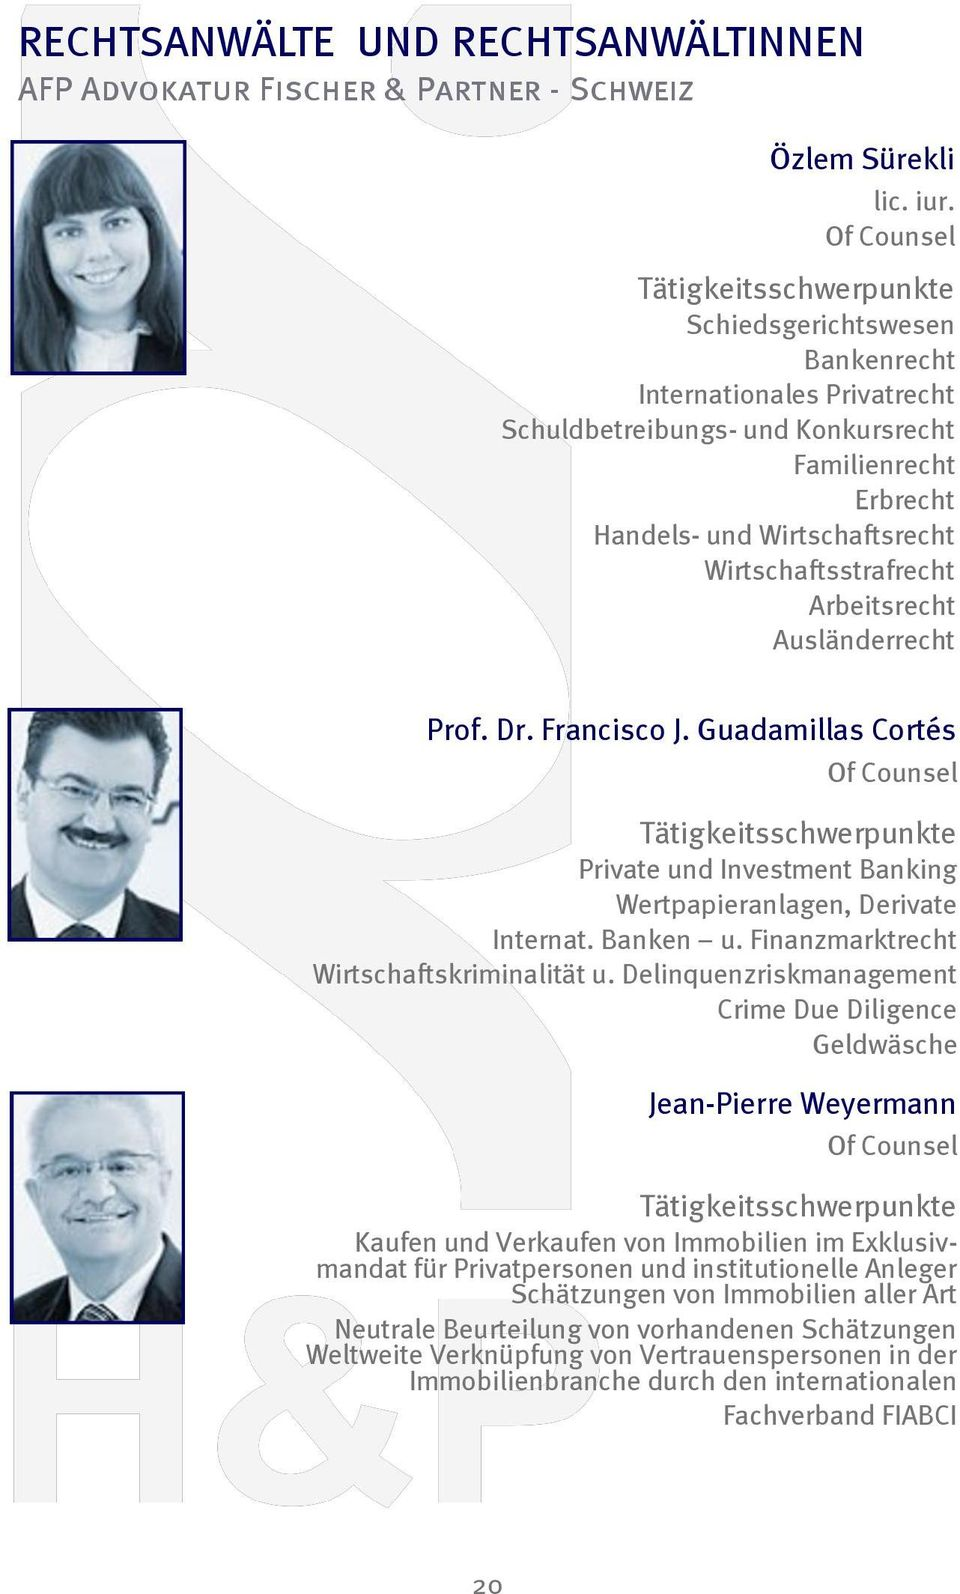 Prof. Dr. Francisco J. Guadamillas Cortés Of Counsel Private und Investment Banking Wertpapieranlagen, Derivate Internat. Banken u. Finanzmarktrecht Wirtschaftskriminalität u.